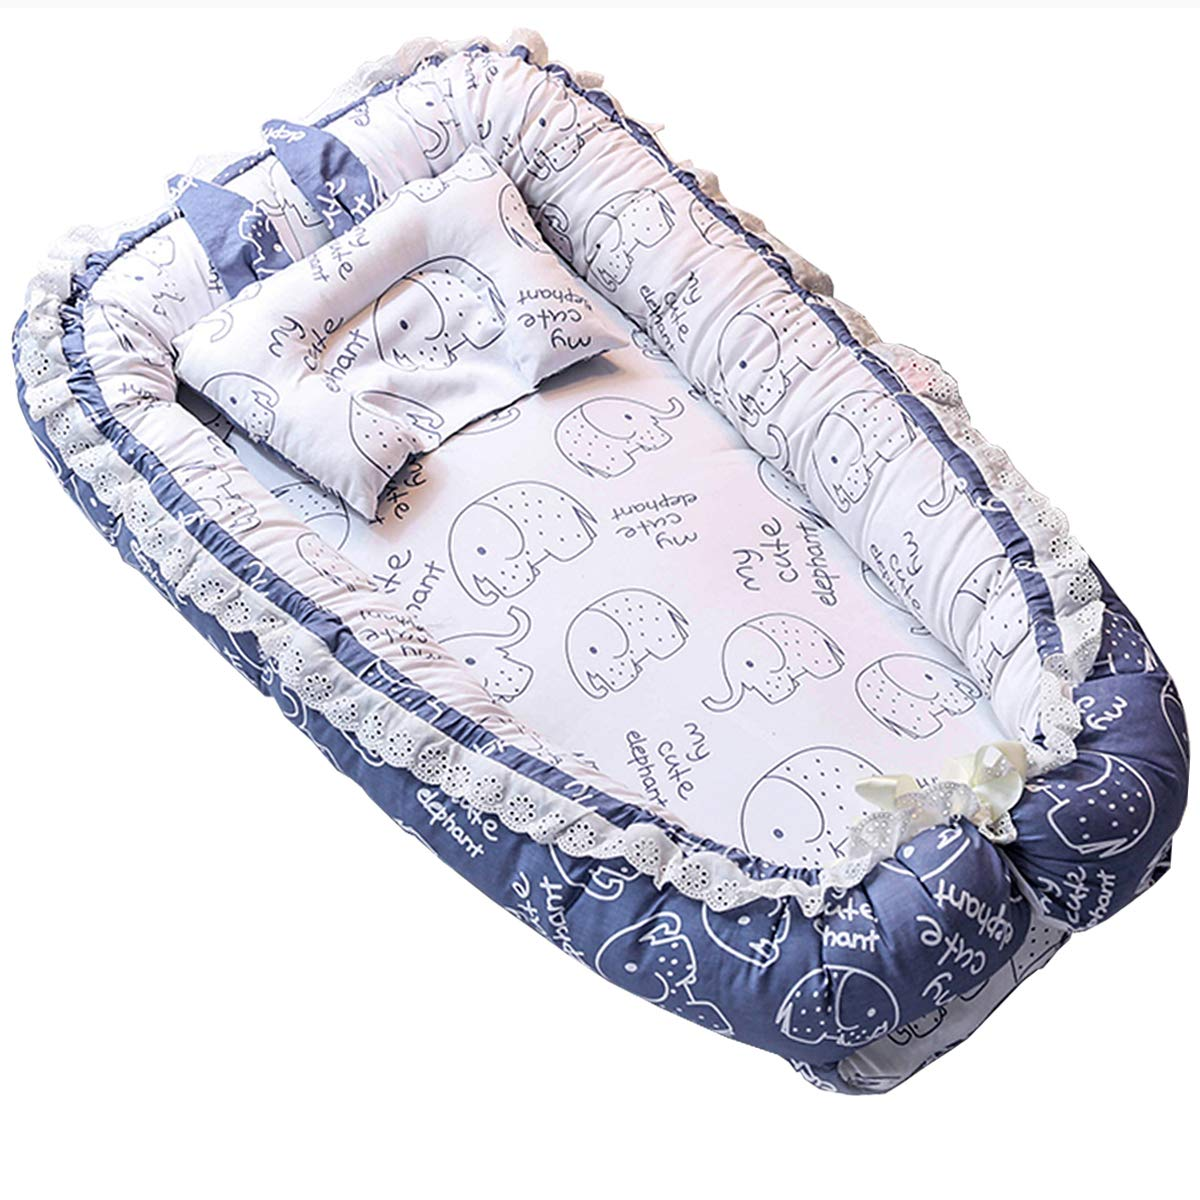 Baby Lounger Nest Bassinet for Bed, Portable Baby Co-Sleeping Cribs & Cradles for Bedroom and Travel, 100% Soft Cotton Baby Bed (Lace Elephant) by Chilly